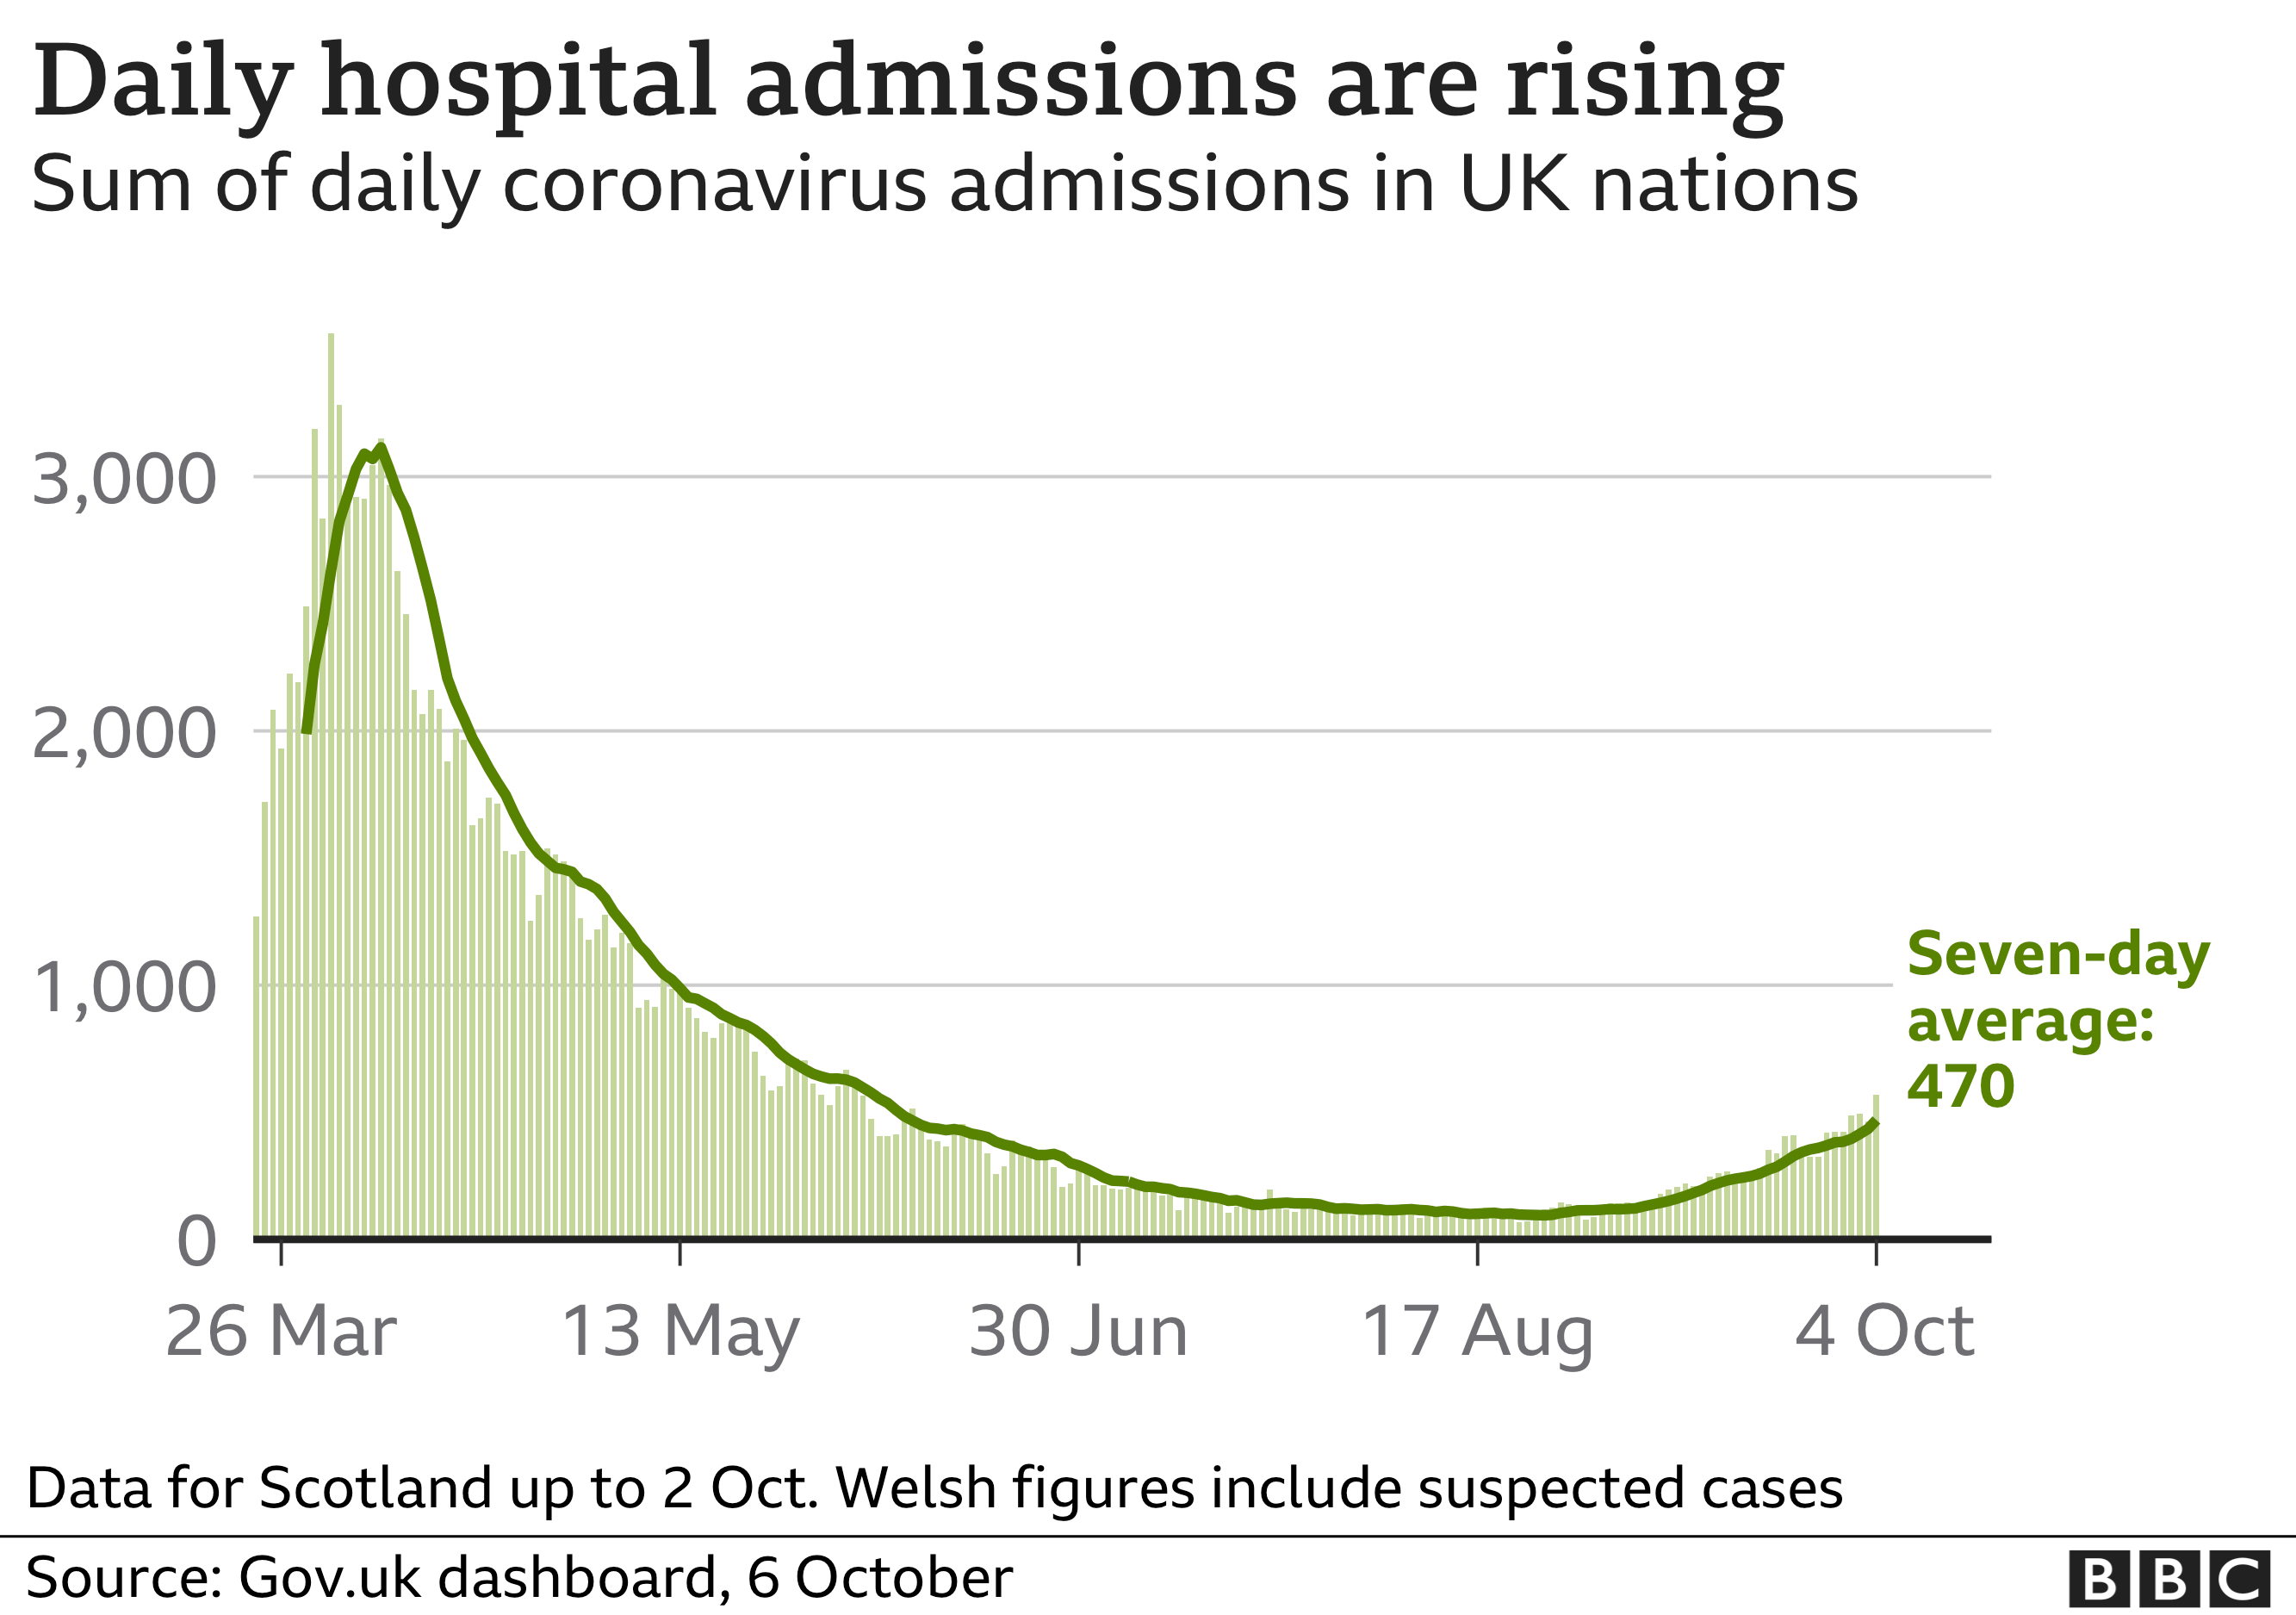 Chart shows hospital admissions are rising